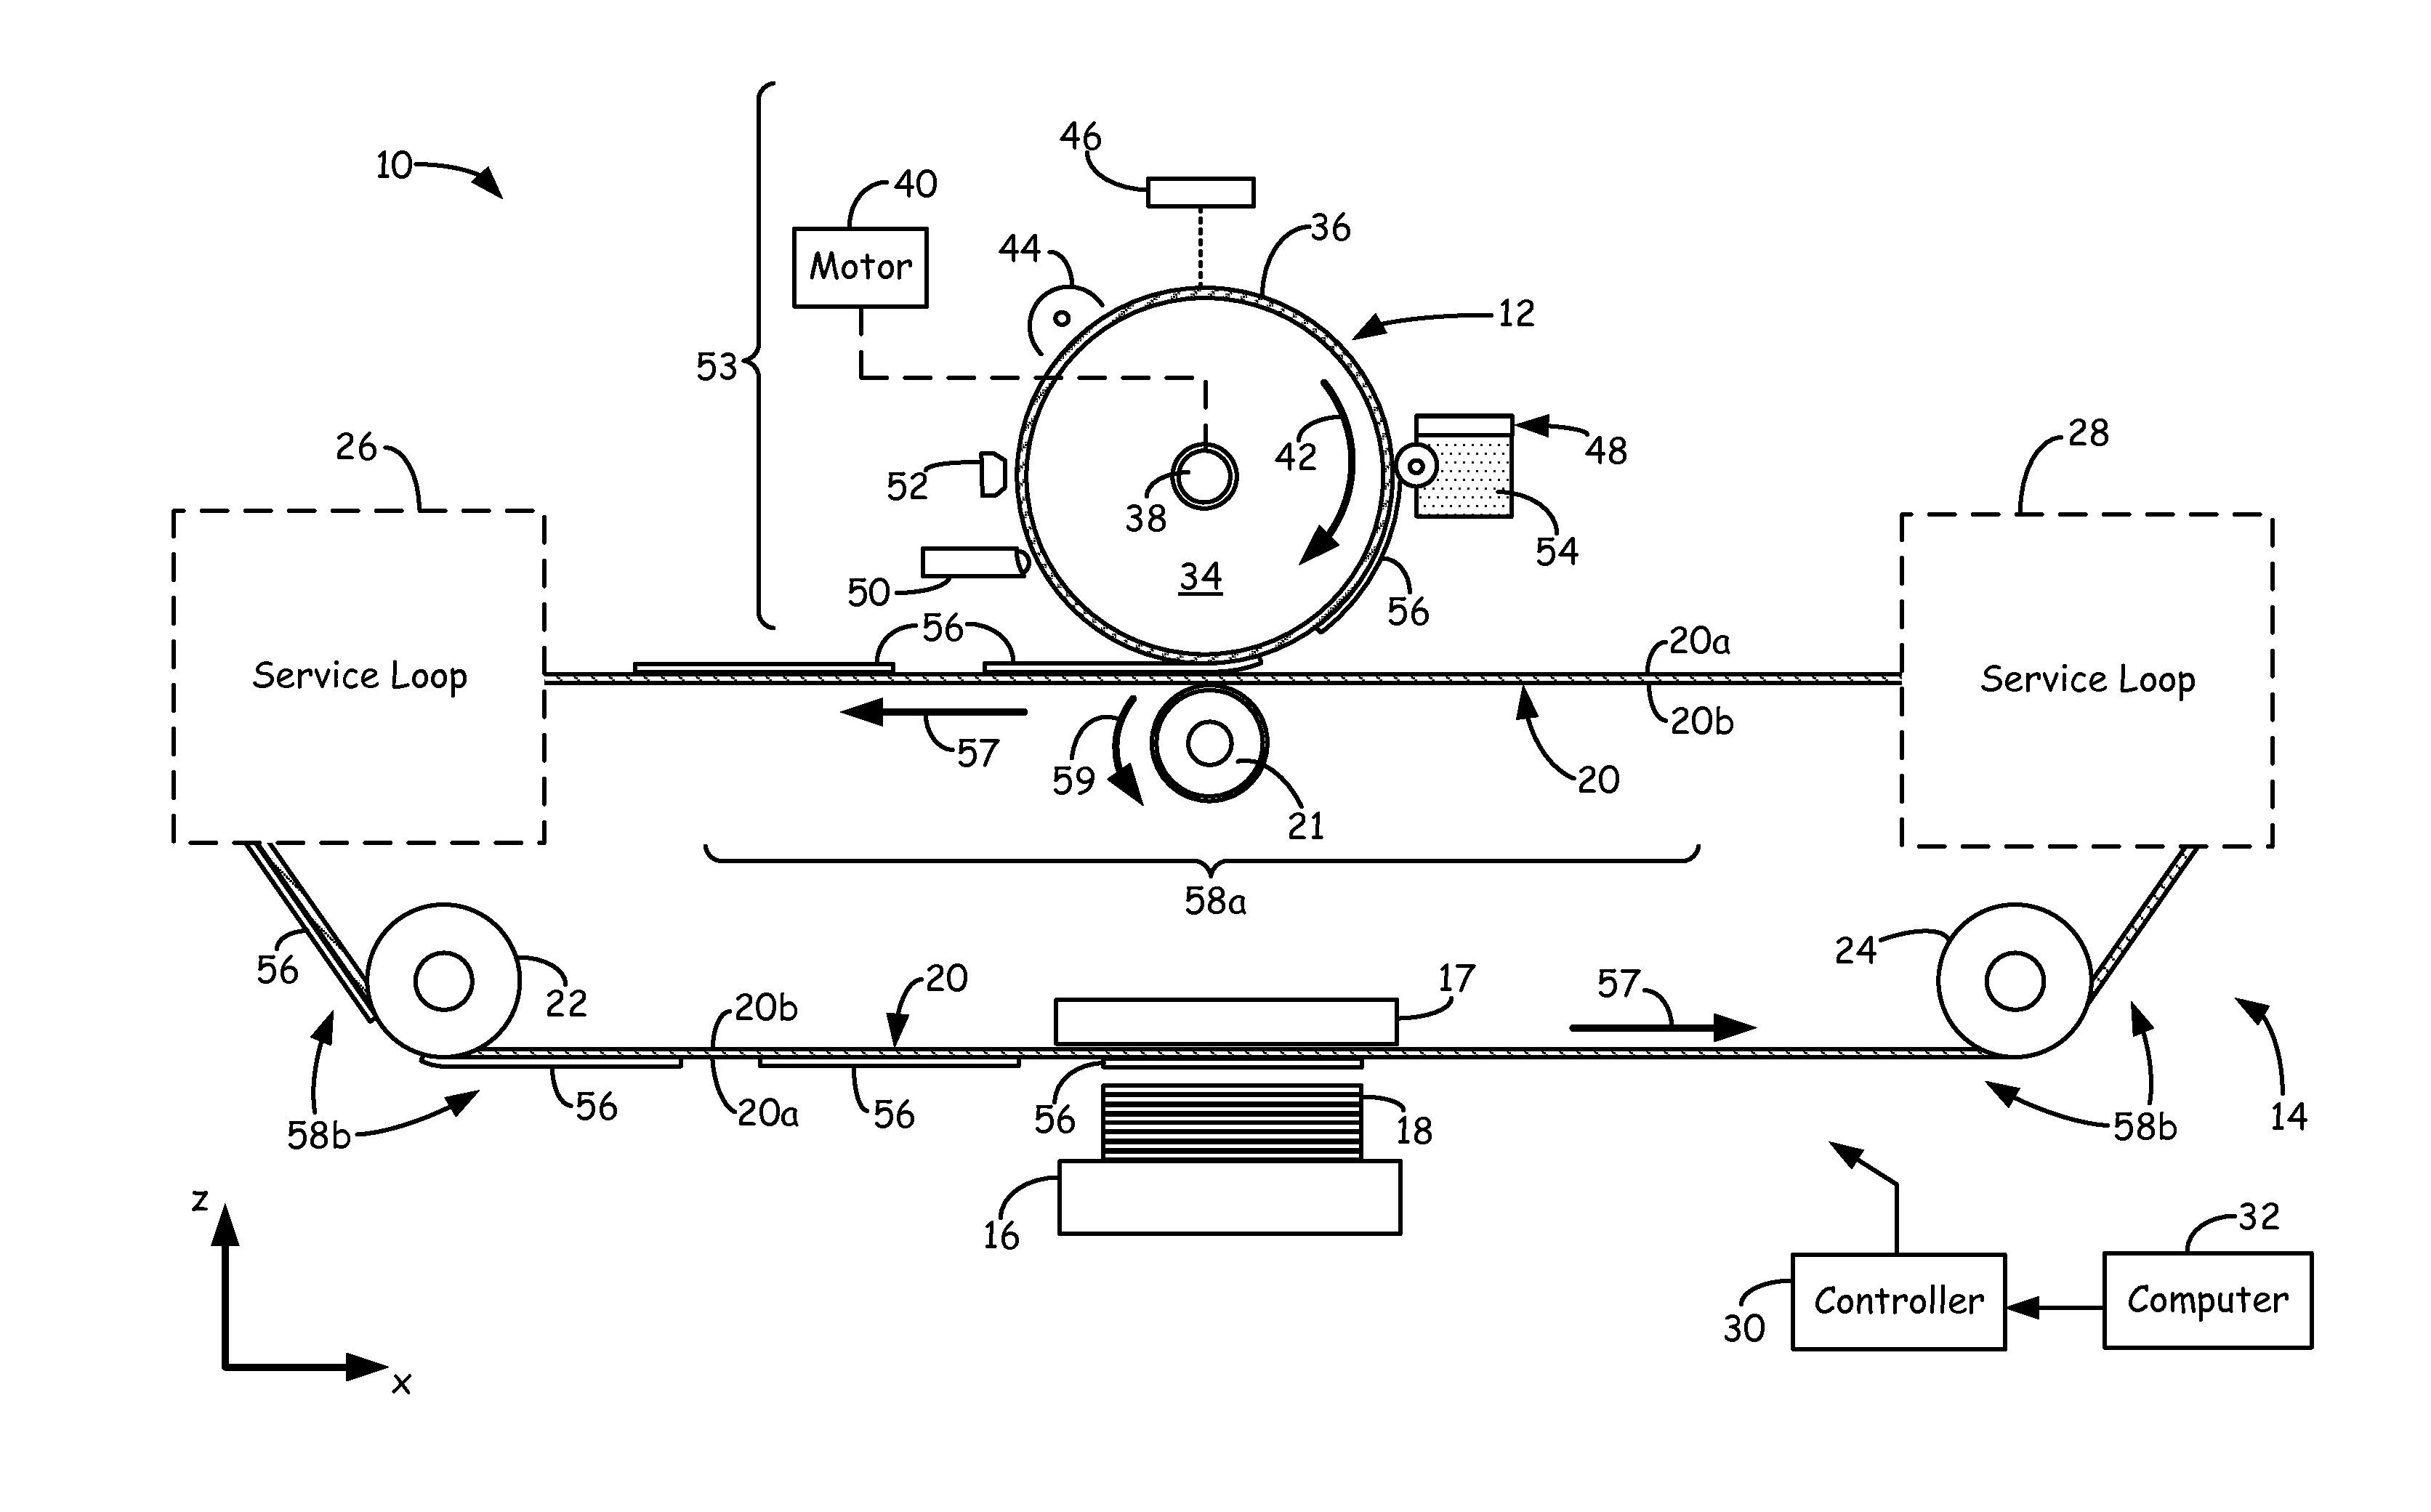 Schematic of Evolve's STEP technology. Image via US Patent Office.